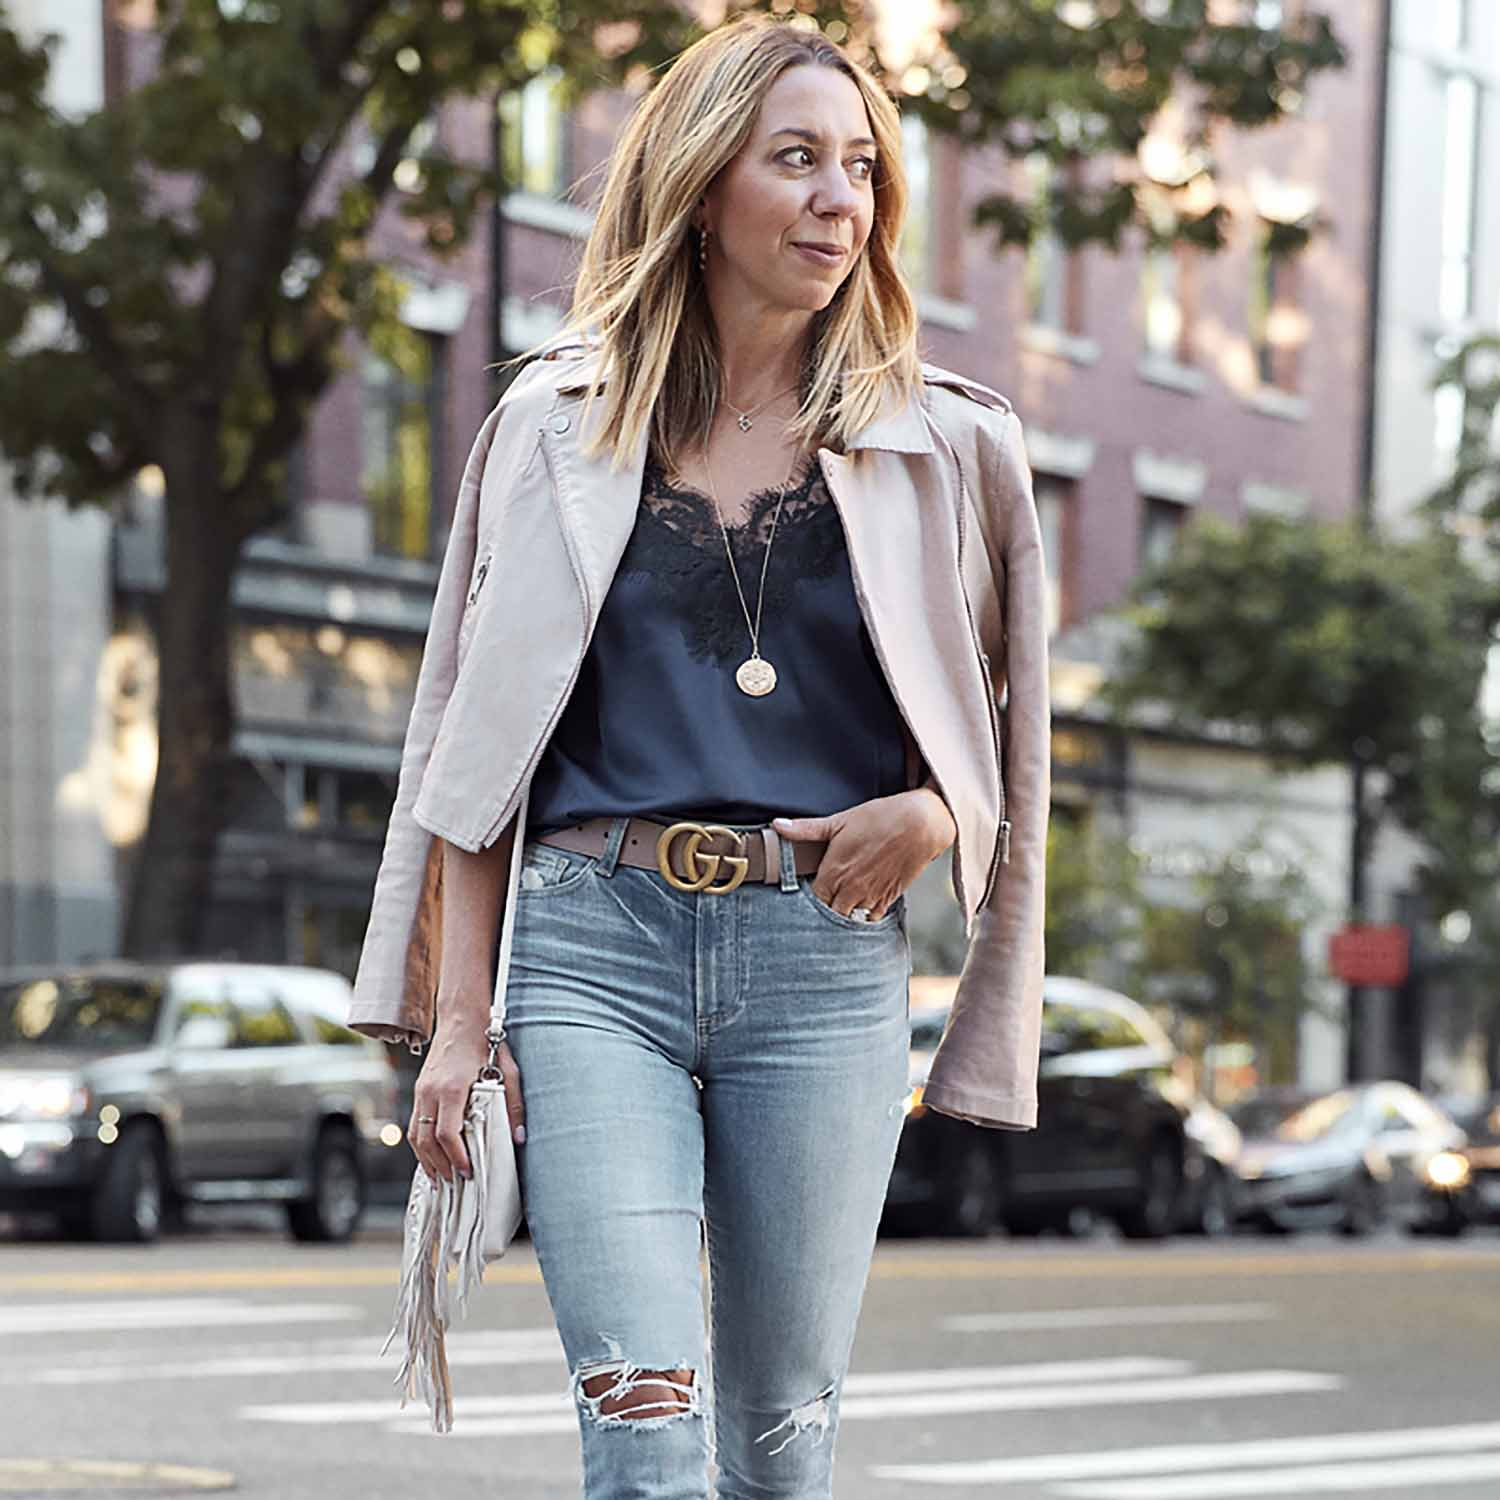 The Motherchic wearing Amazon The drop camisole and jacket